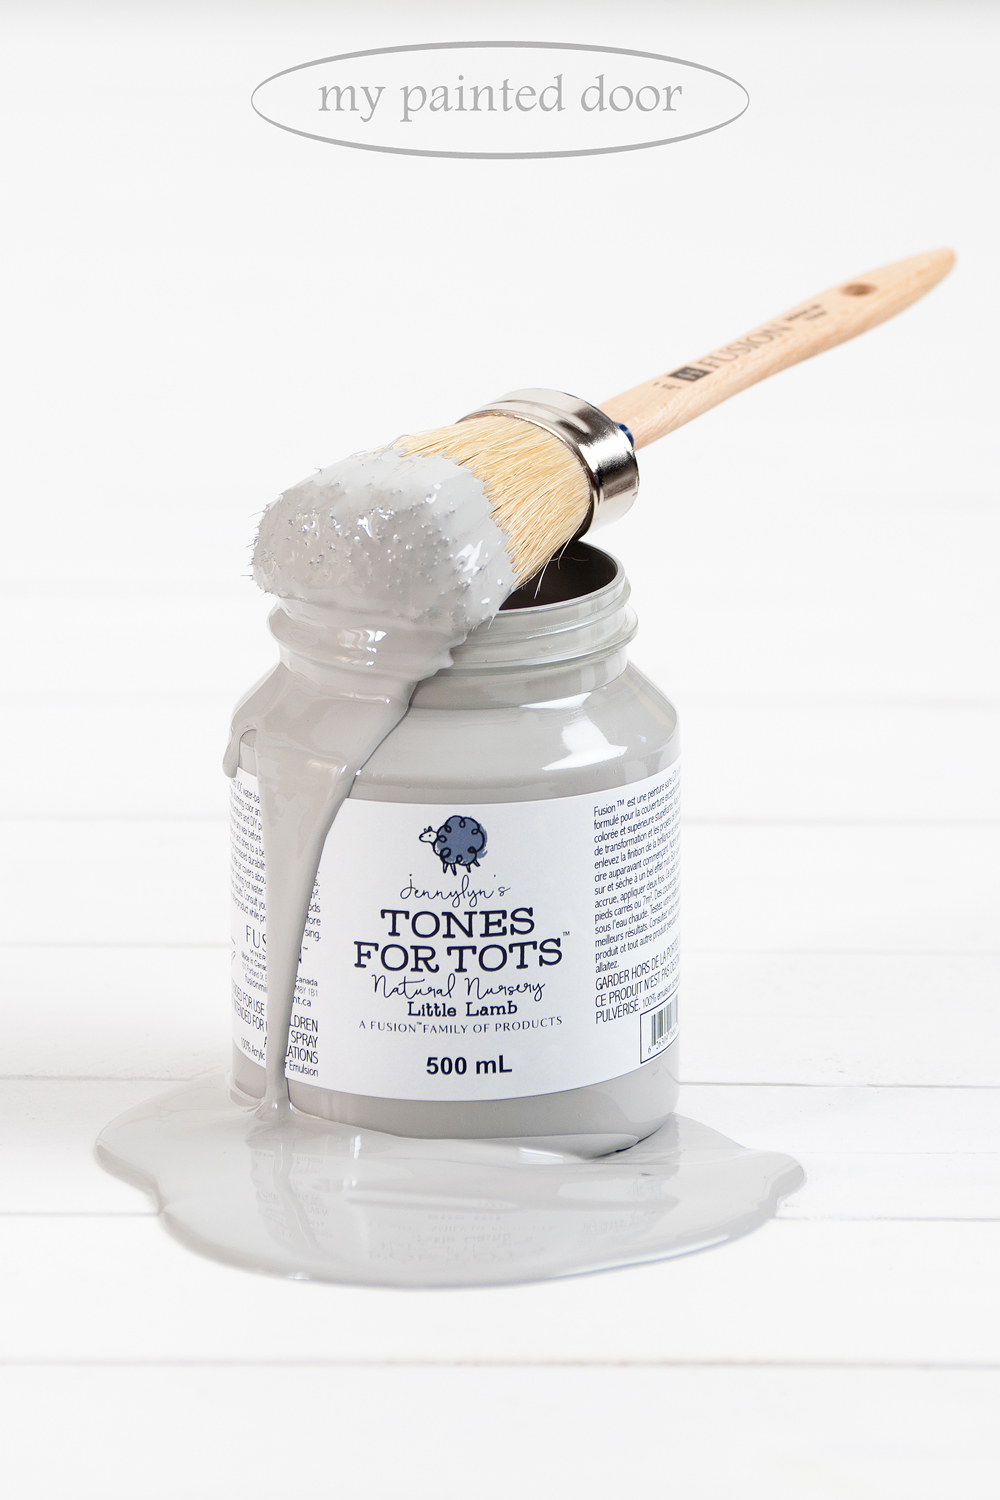 Little Lamb is part of the Jennylyn's Tones for Tots Collection of Fusion Mineral Paint, but let's face it - the colours in that line are certainly not just for tots! Little Lamb is one of my bestselling shades of grey.